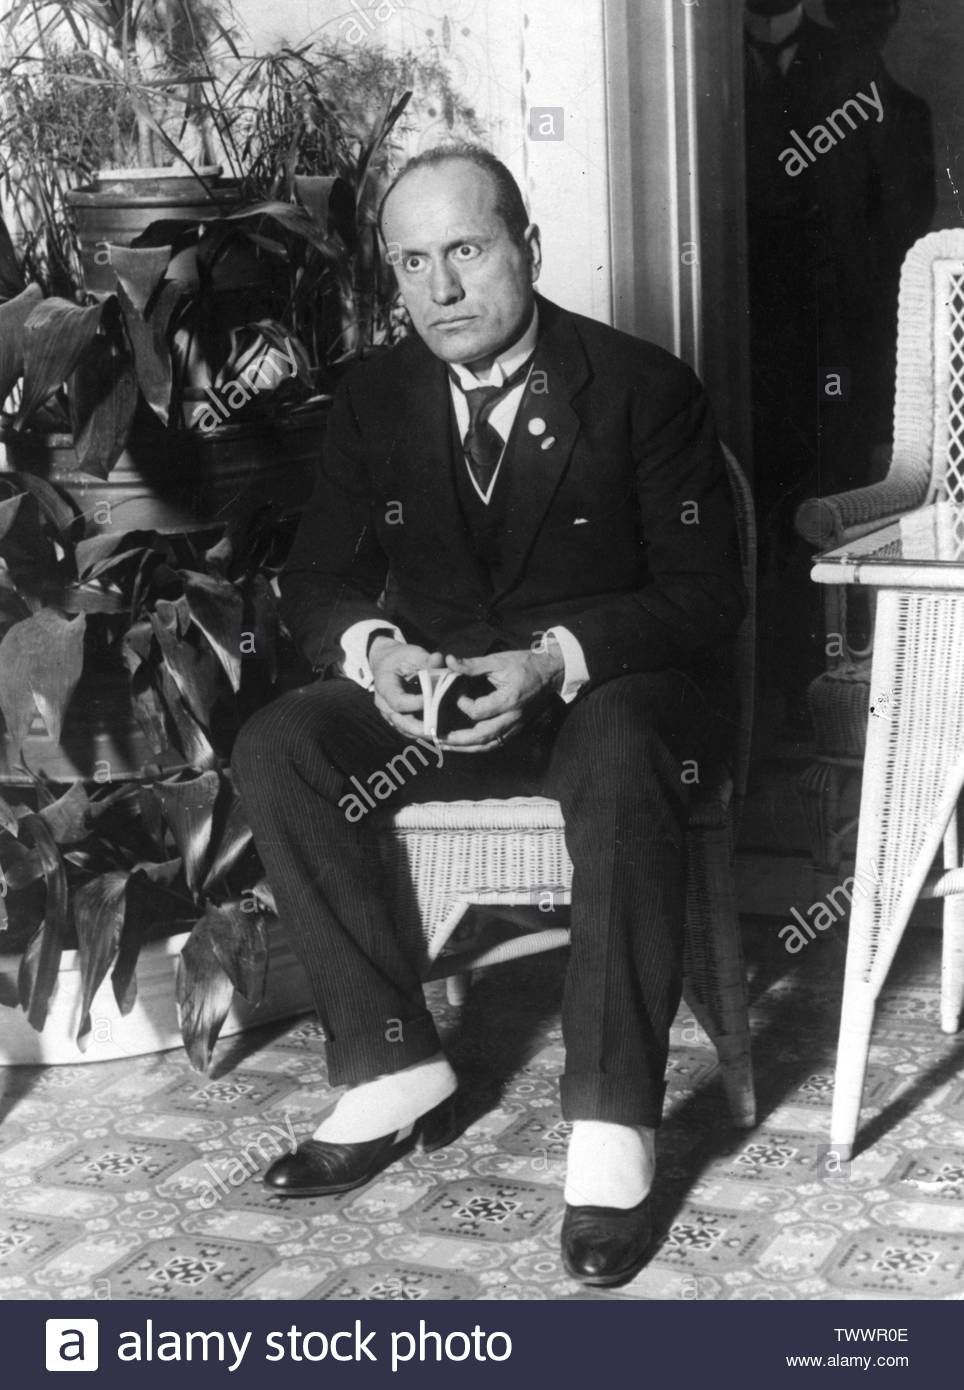 """""""English: November 1922:  Italian fascist dictator Benito Mussolini (1883 - 1945).  (Photo by Topical Press Agency/Getty Images); November 1922; https://www.pinterest.com/giseeledanduran/mussolini-and-facism/; Topical Press Agency; """" Stock Photo"""